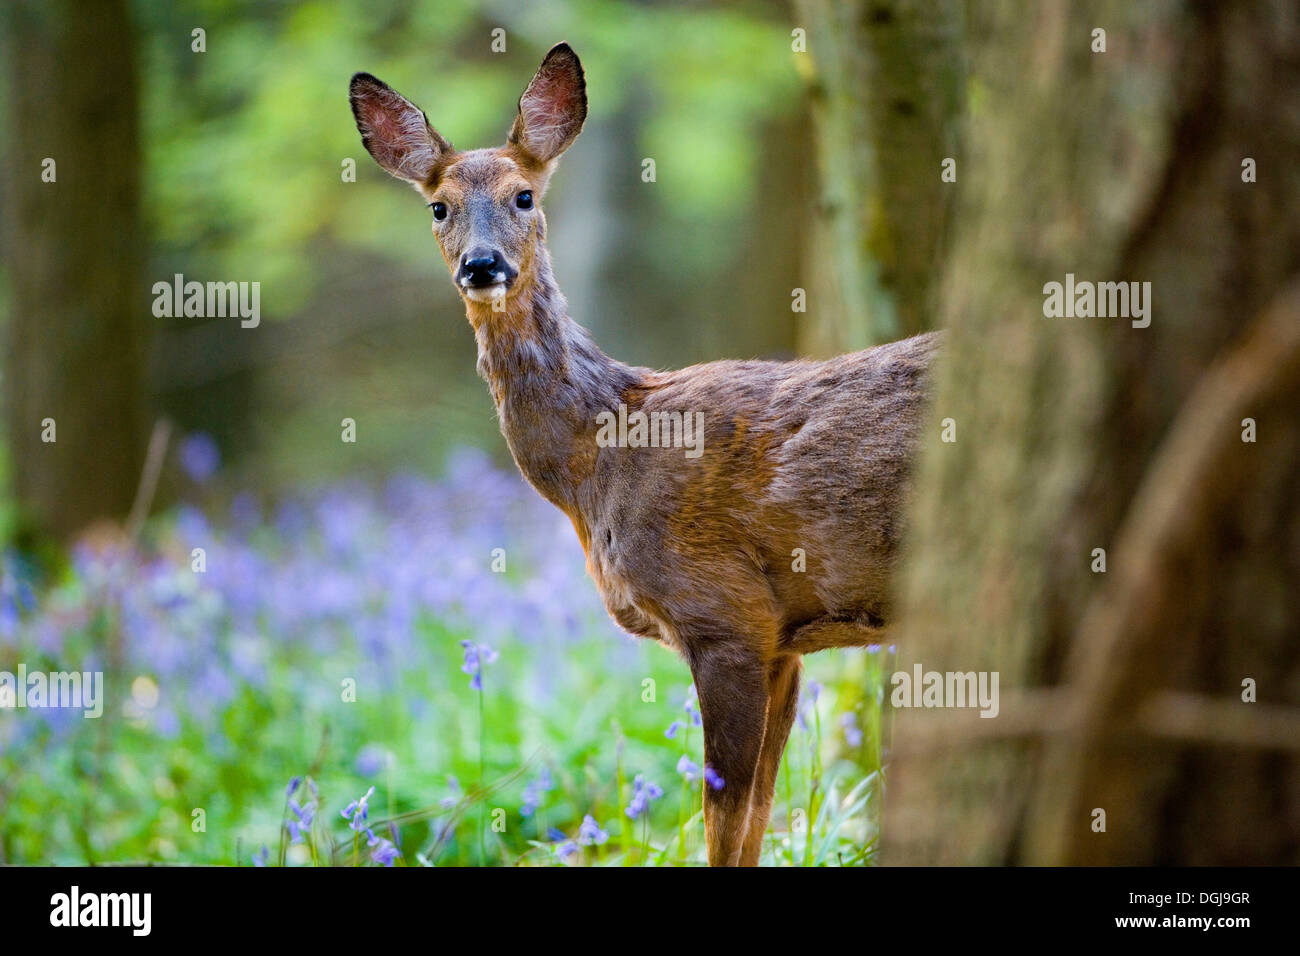 An inquisitive roe deer in a forest of bluebells. - Stock Image